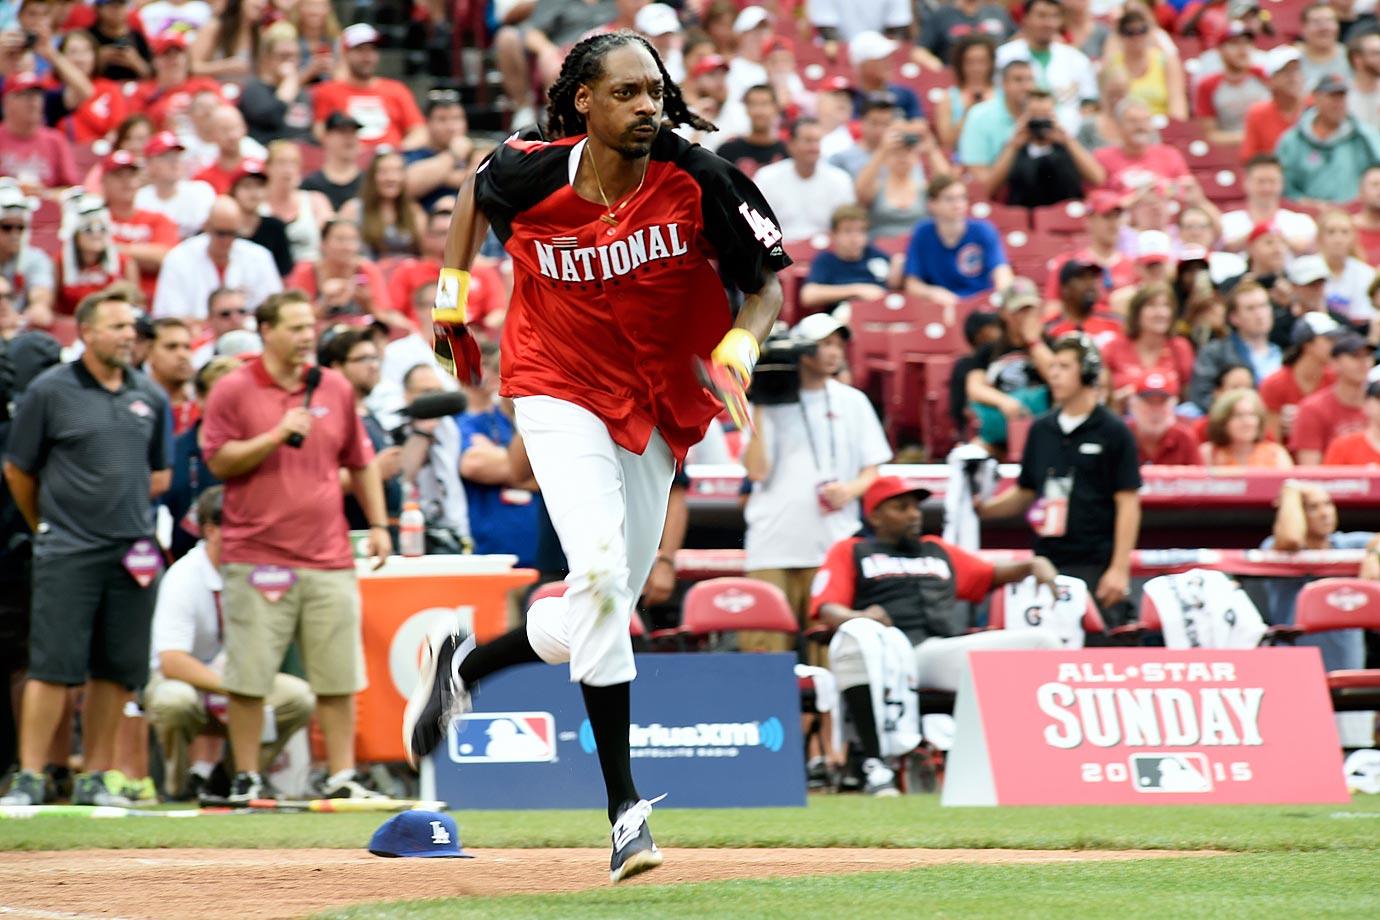 Snoop Dogg runs to first base duirng the MLB All-Star Legends And Celebrity Softball Game on July 12, 2015 at Great American Ball Park in Cincinnati.